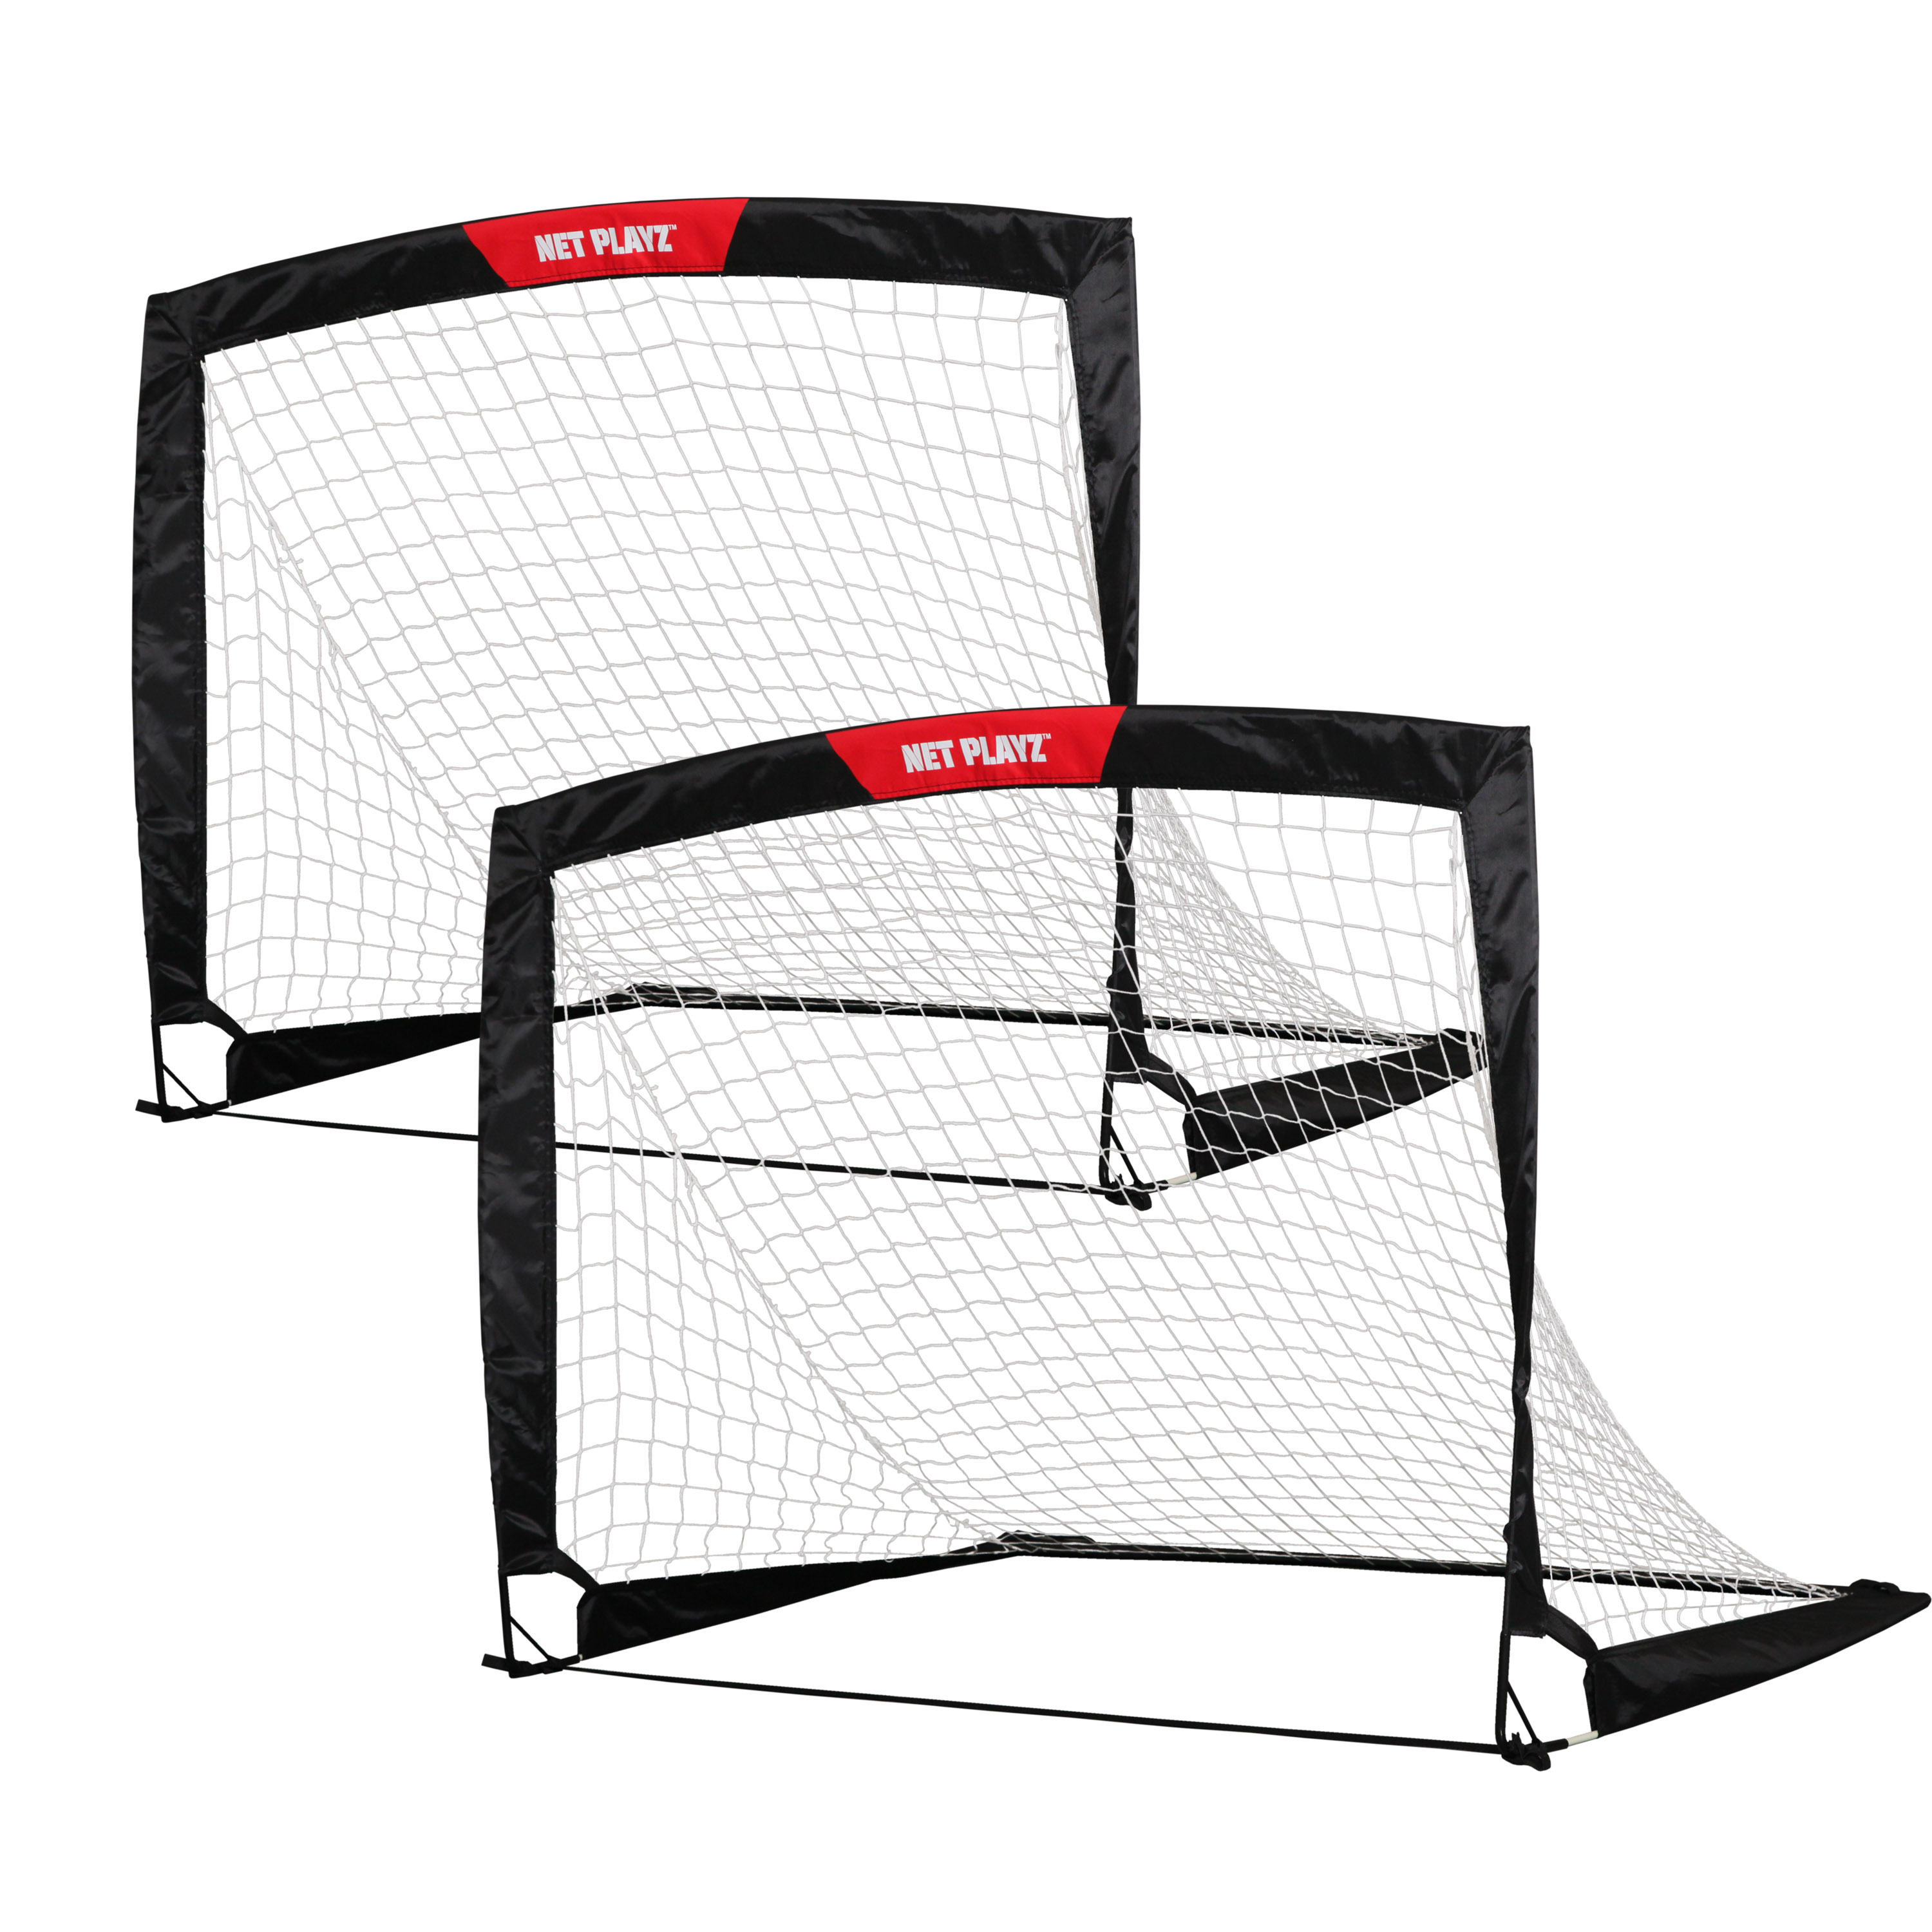 Net Playz 4'x3' Soccer Goal Easy Fold-Up Training Goal, Pair or Single